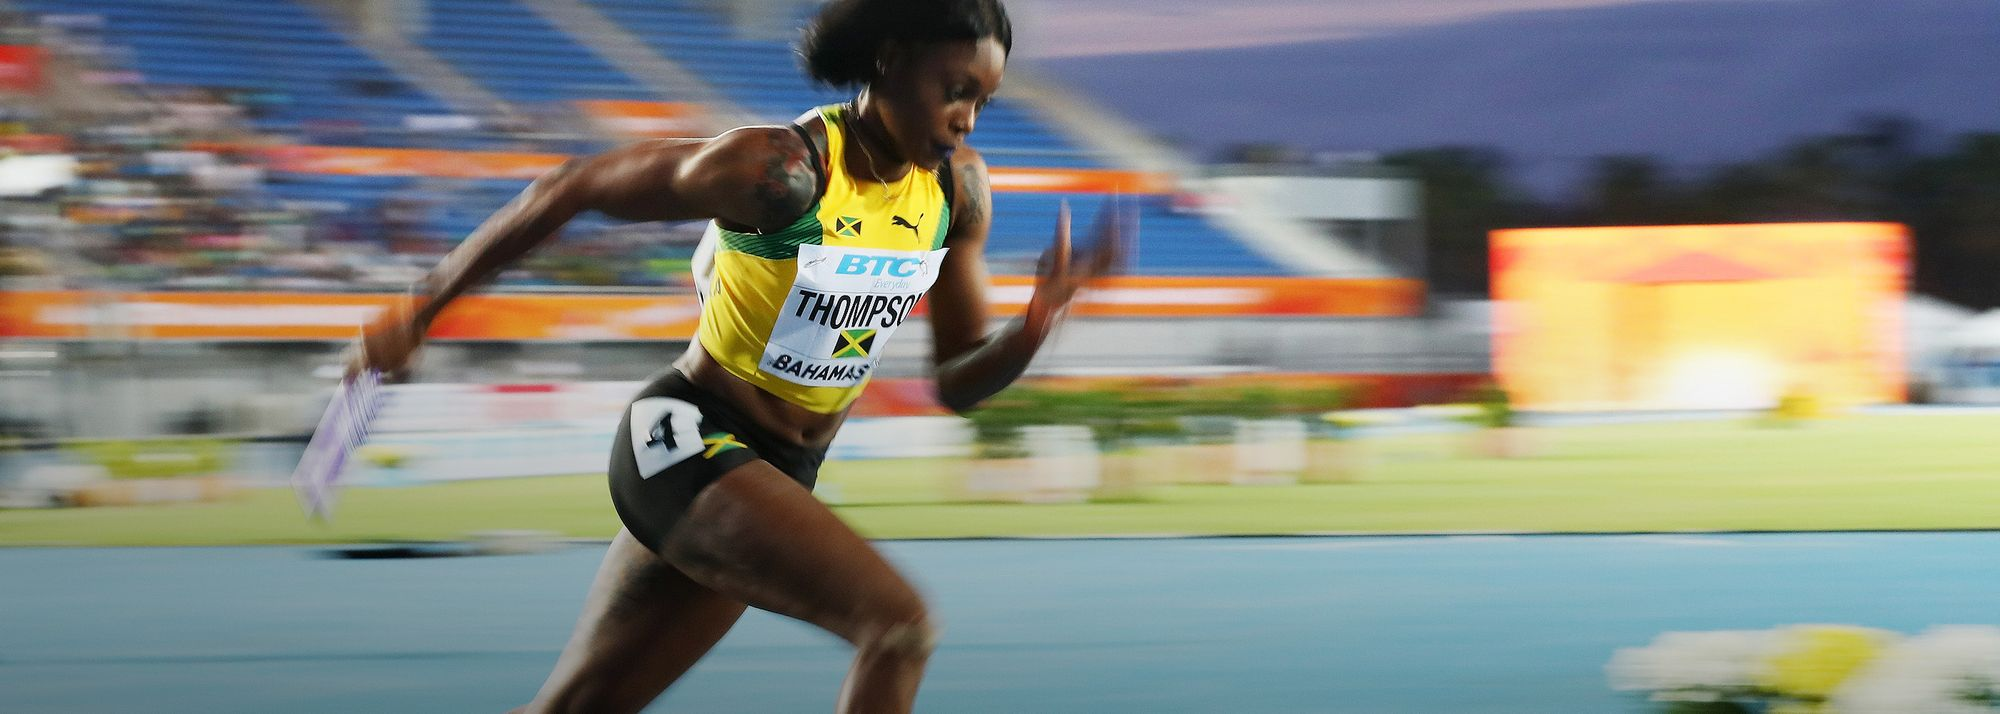 Double Olympic champion Elaine Thompson-Herah, three-time world indoor champion Pavel Maslak and African 100m champion Akani Simbine are among the big names on the final entry list for the World Athletics Relays Silesia 21.